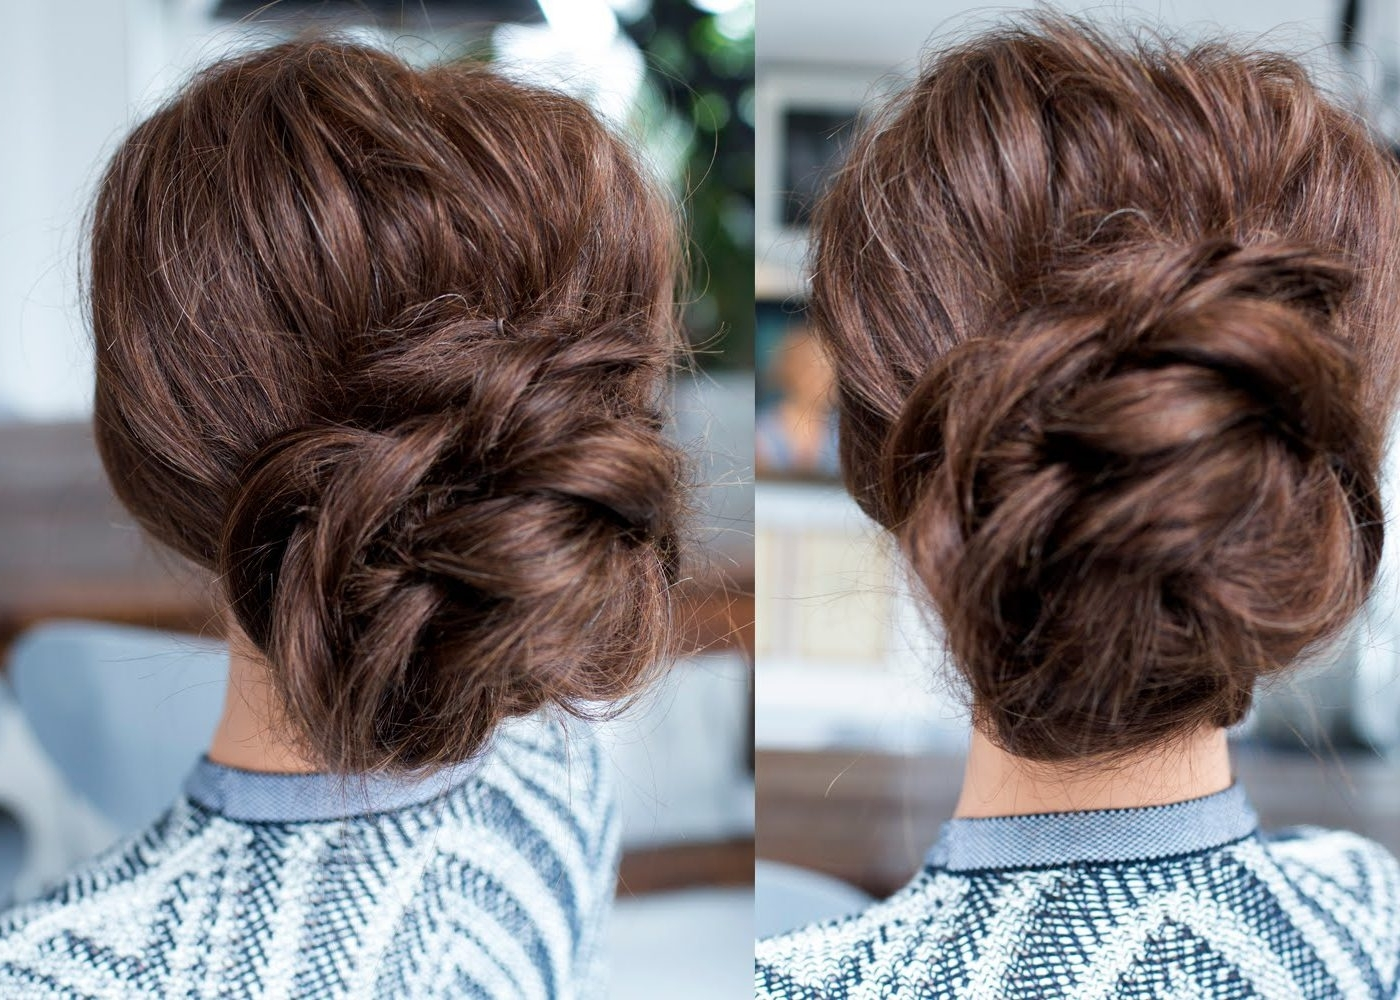 Bridesmaid Hairstyles Updos For Long Hair Hairstyle Ideas In In Quick Easy Updo Hairstyles For Thick Hair (View 9 of 15)